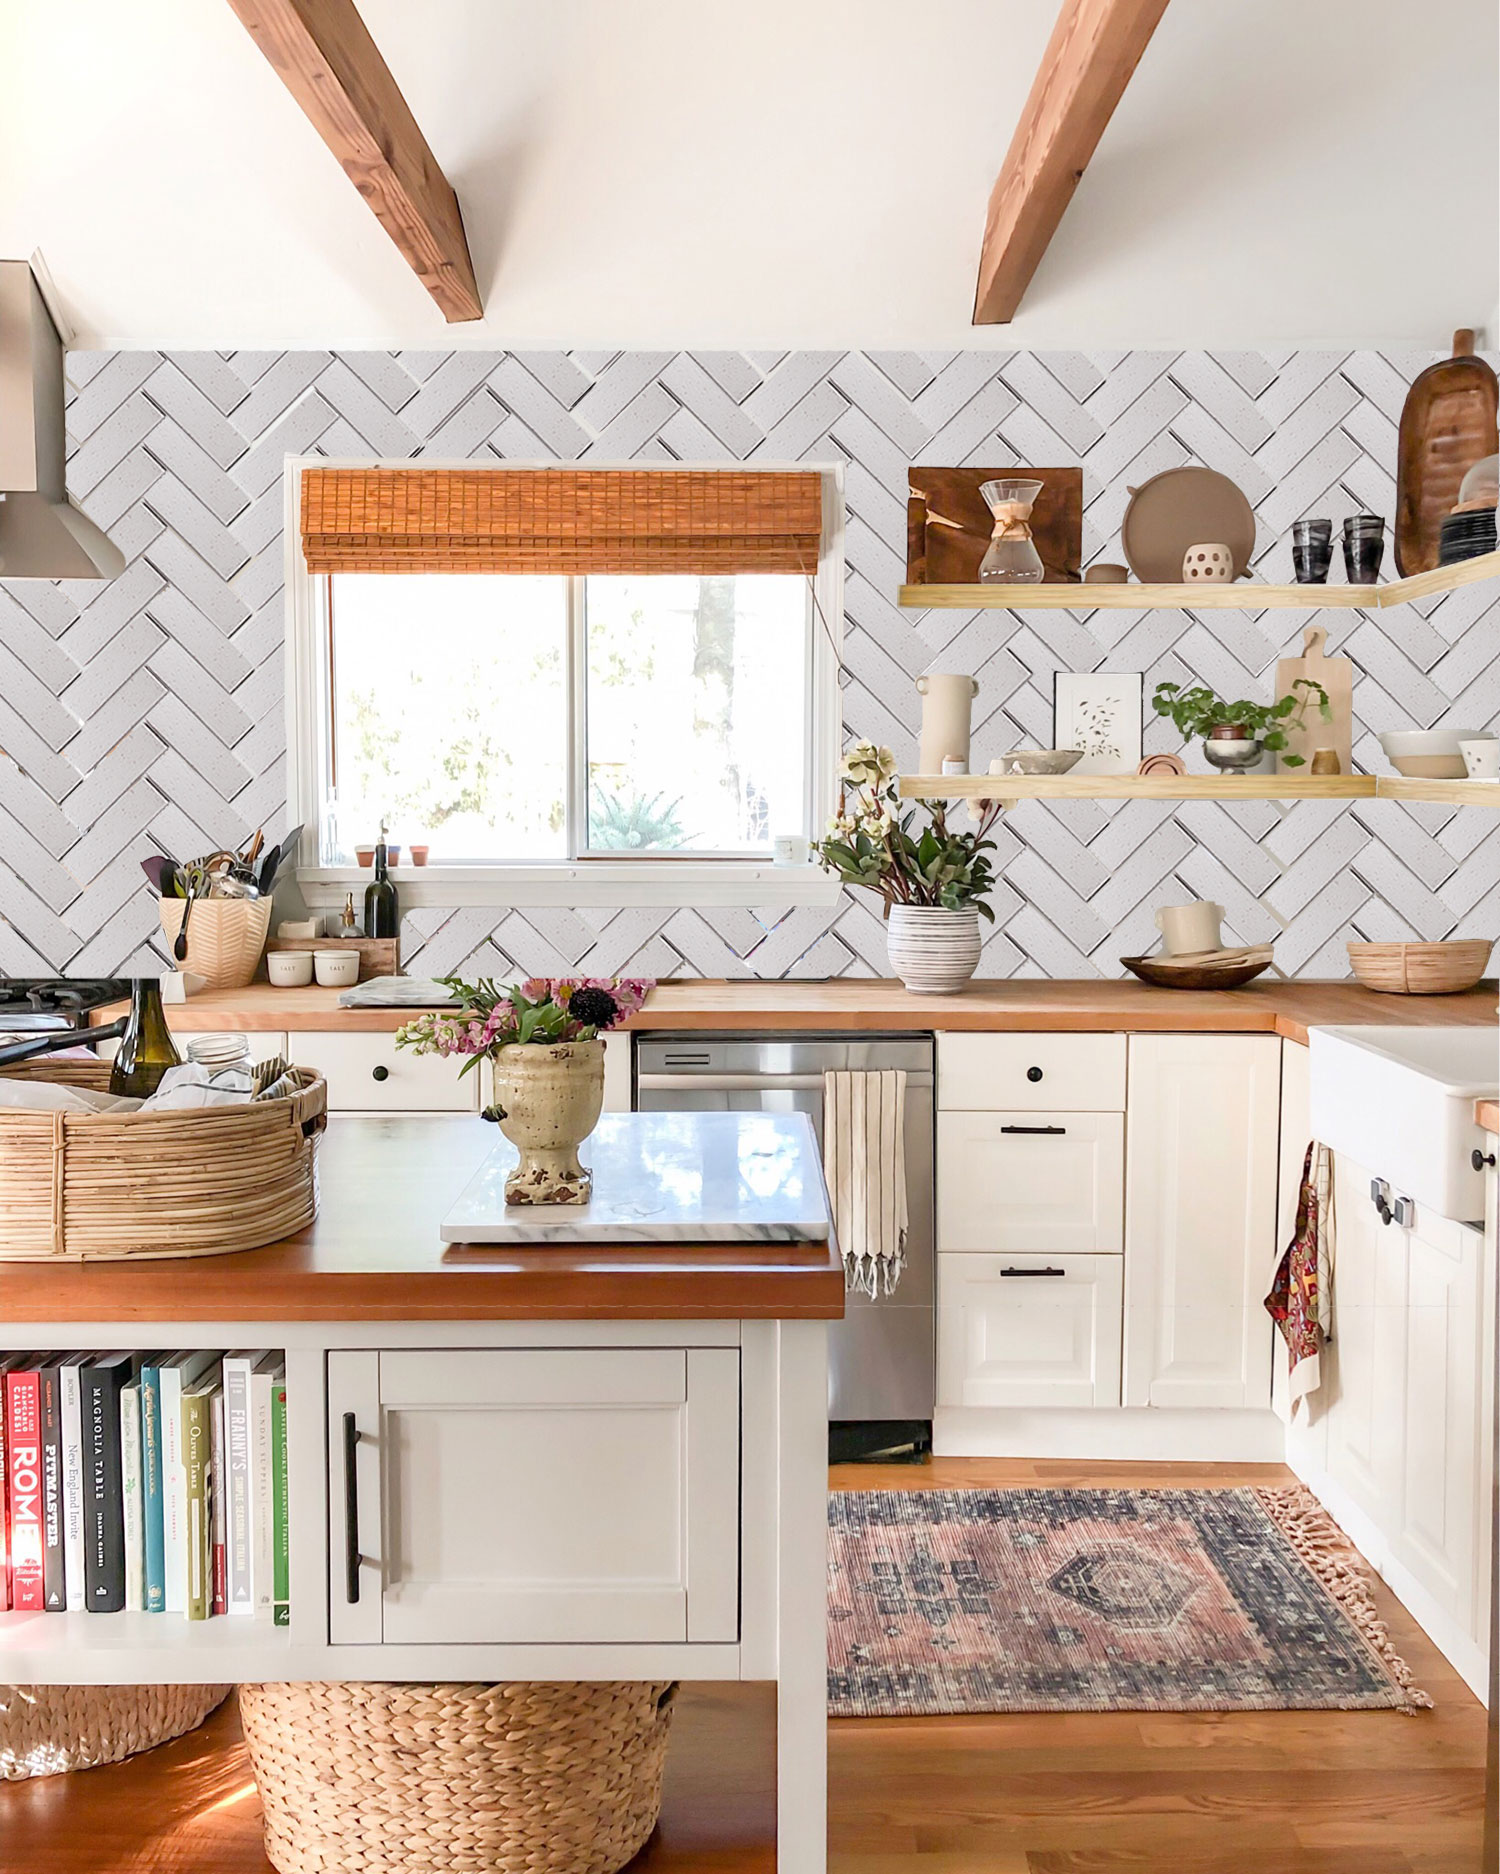 mStarr design / #farmhousedialfano kitchen tile mockup / fireclay tile